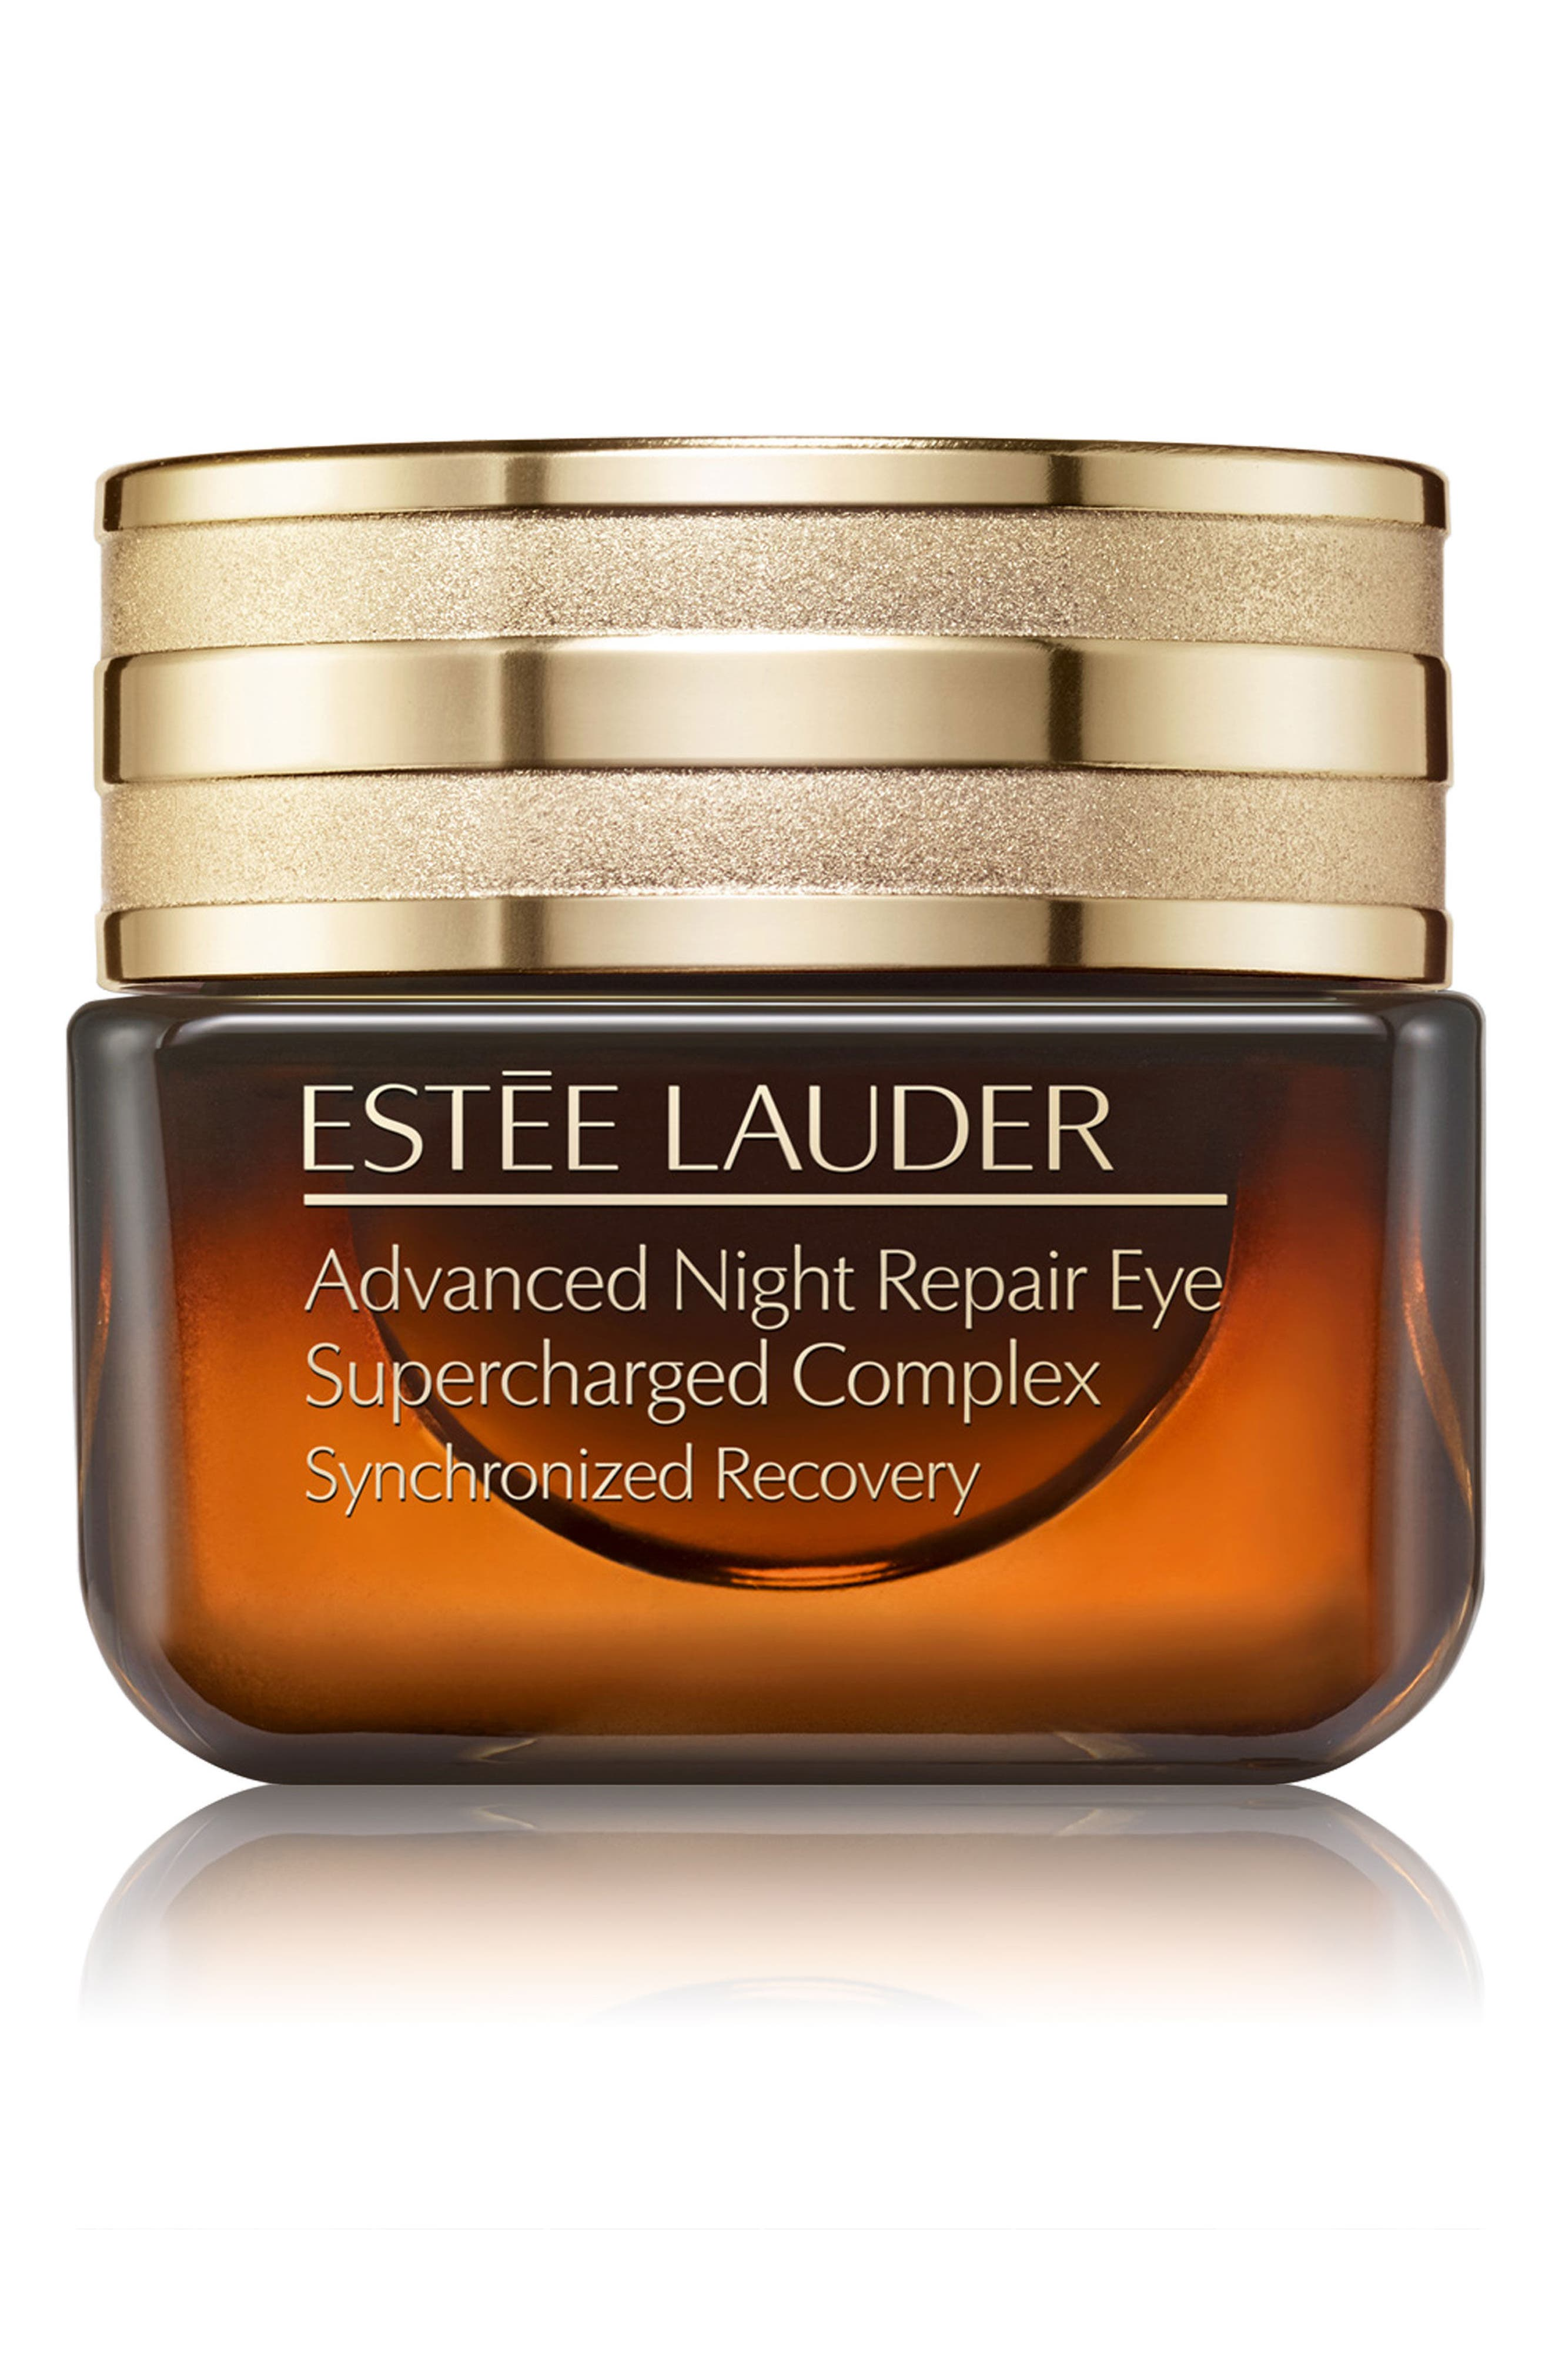 Advanced Night Repair Eye Supercharged Complex Synchronized Recovery Eye Cream